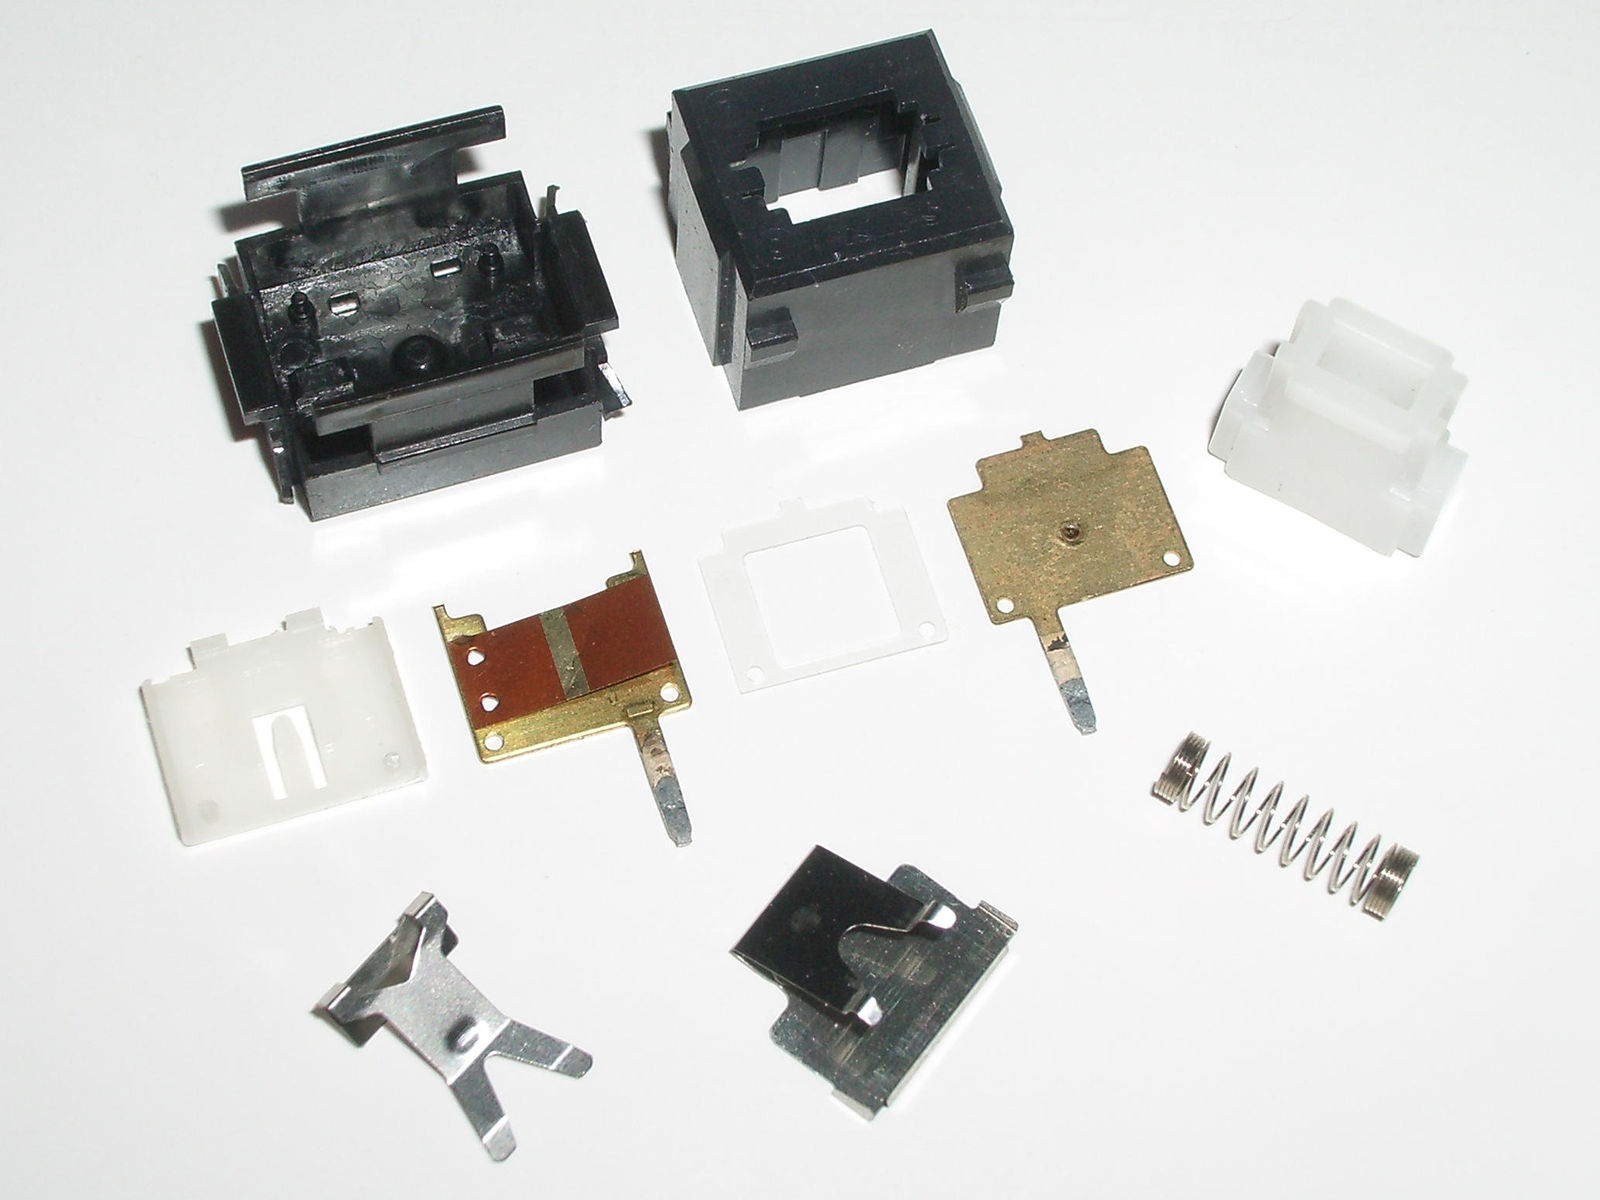 Alps SKCM White Disassembled